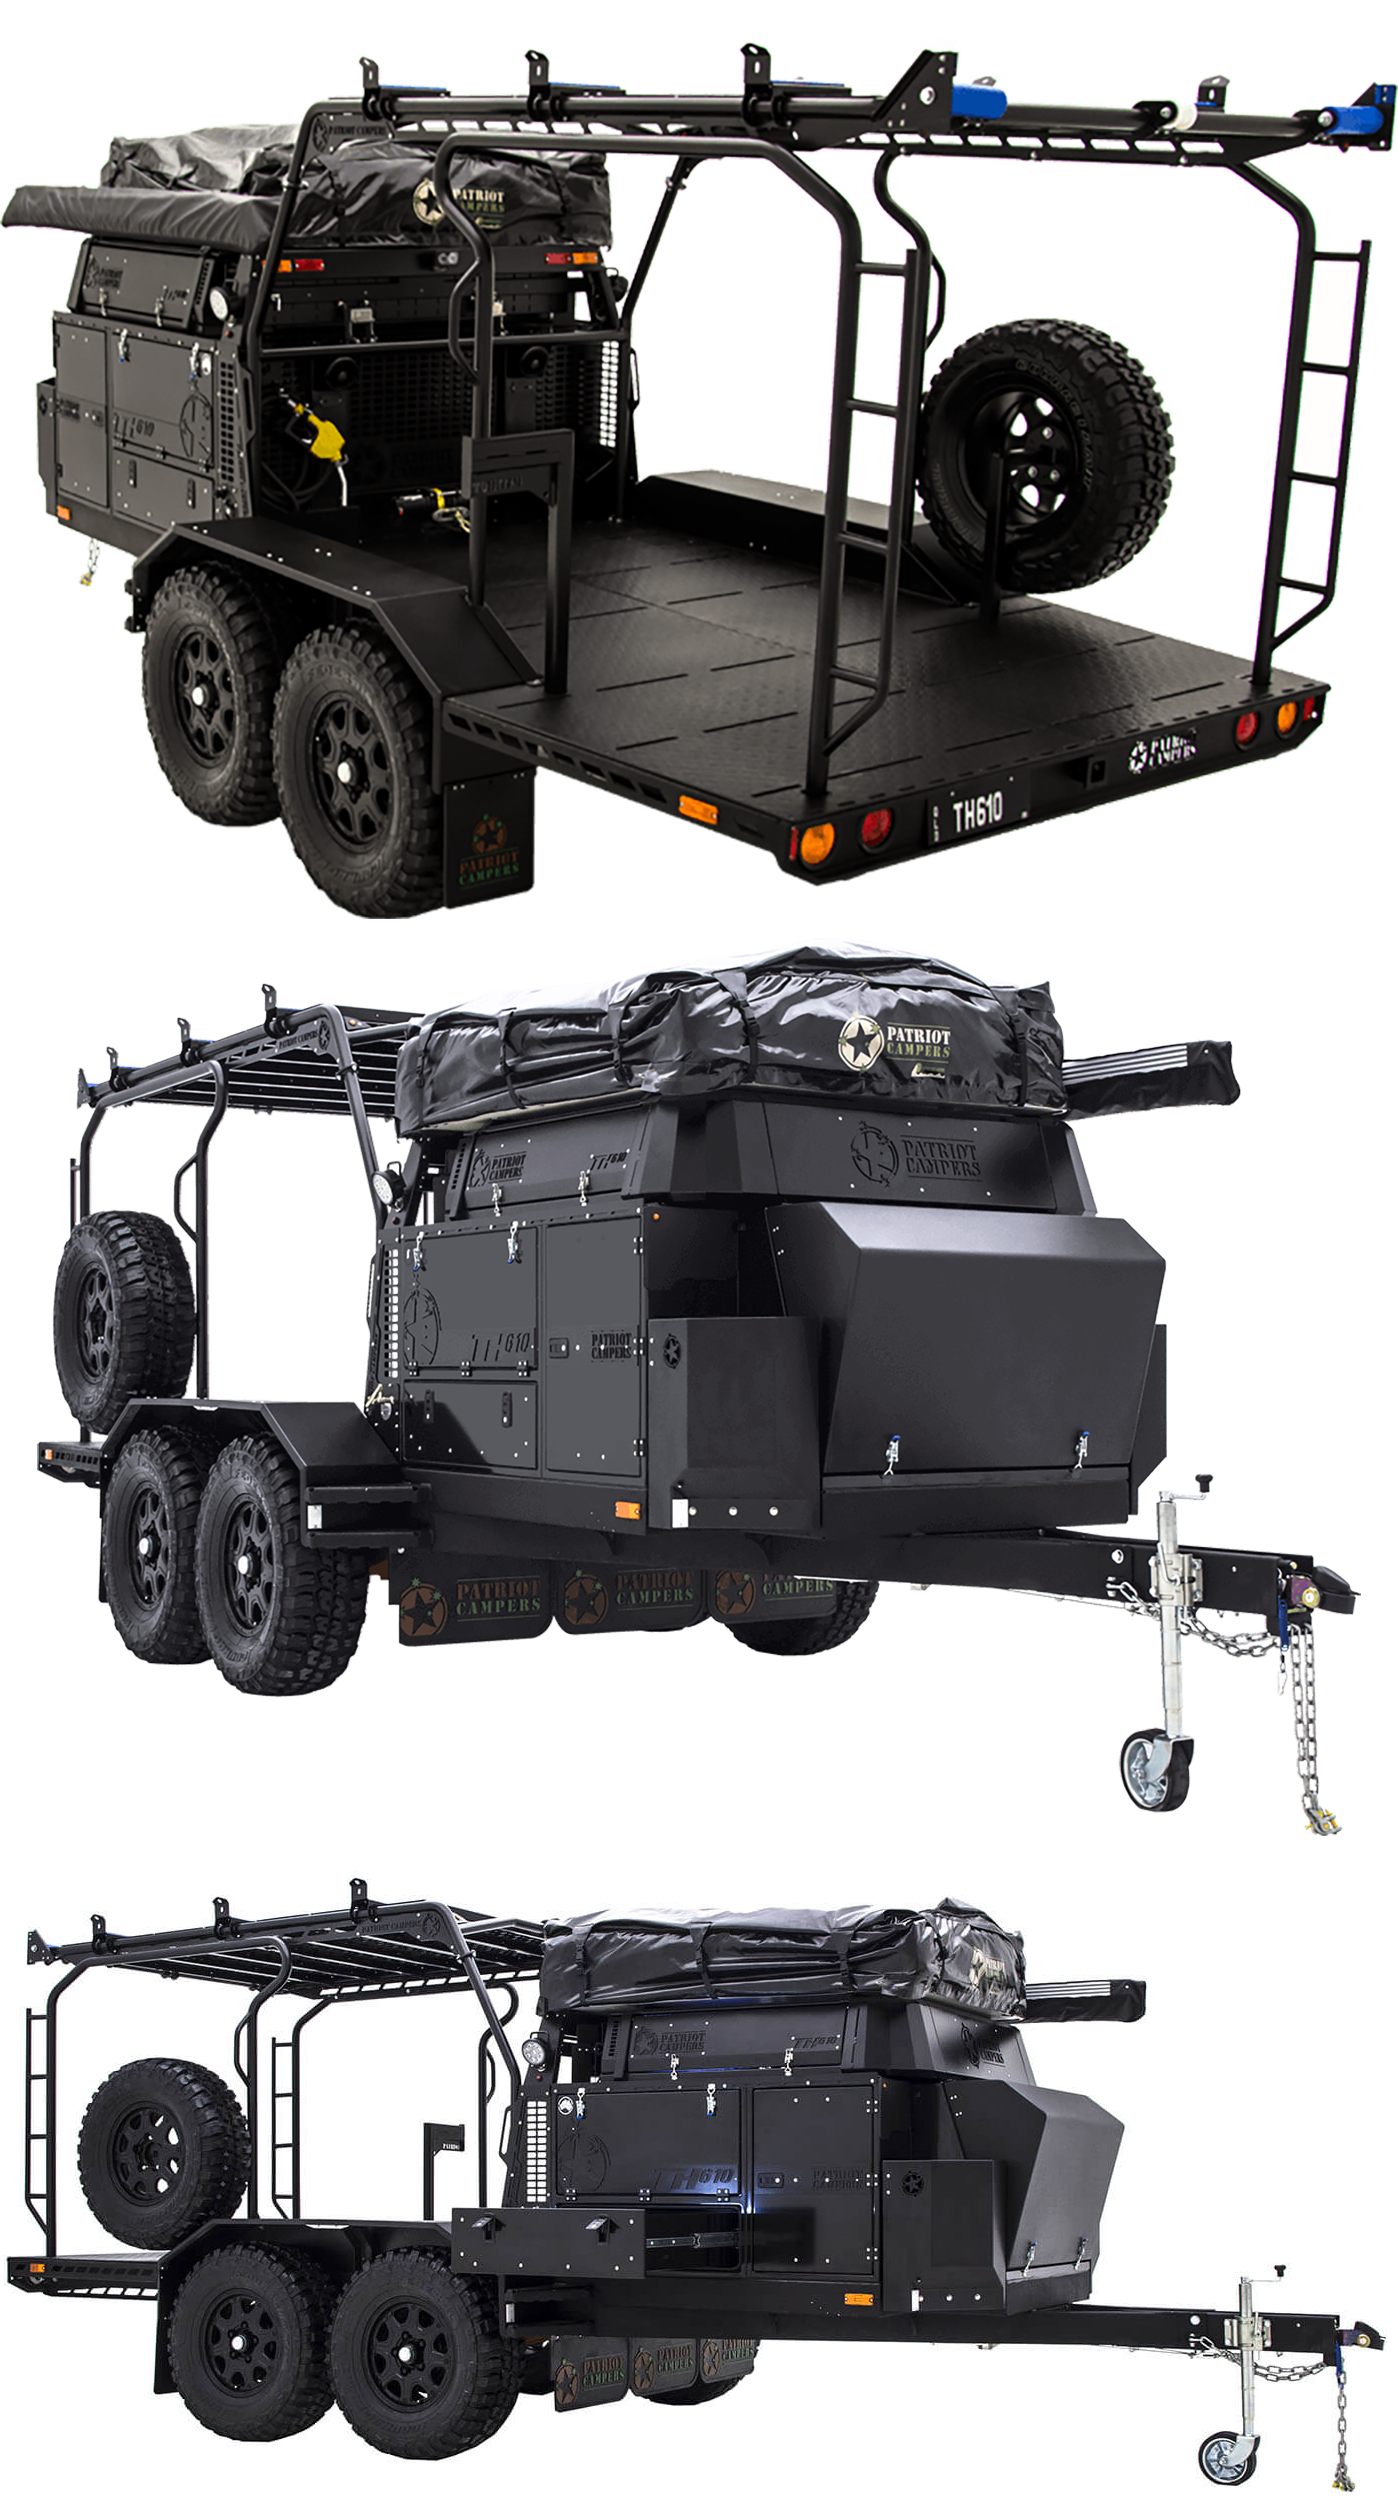 Love It All The Cool Trailers Are From Europe Or Austria Lengthening Car Trailer Page 2 Pirate4x4com 4x4 And Offroad